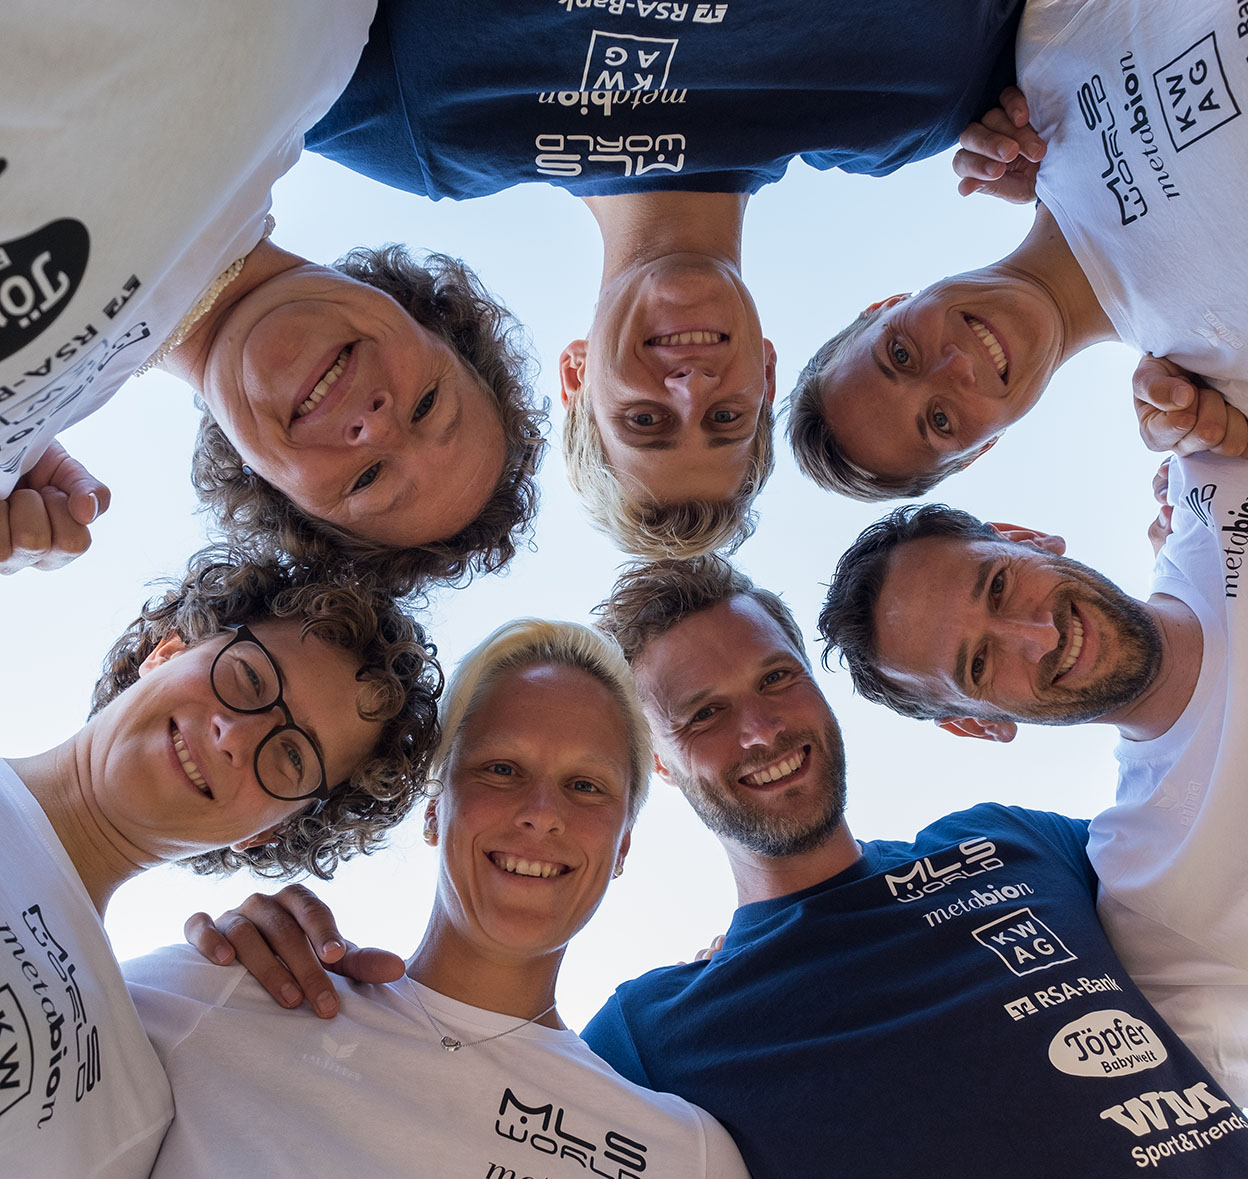 Teamfoto Beachvolleyballteam Dollinger Kulzer